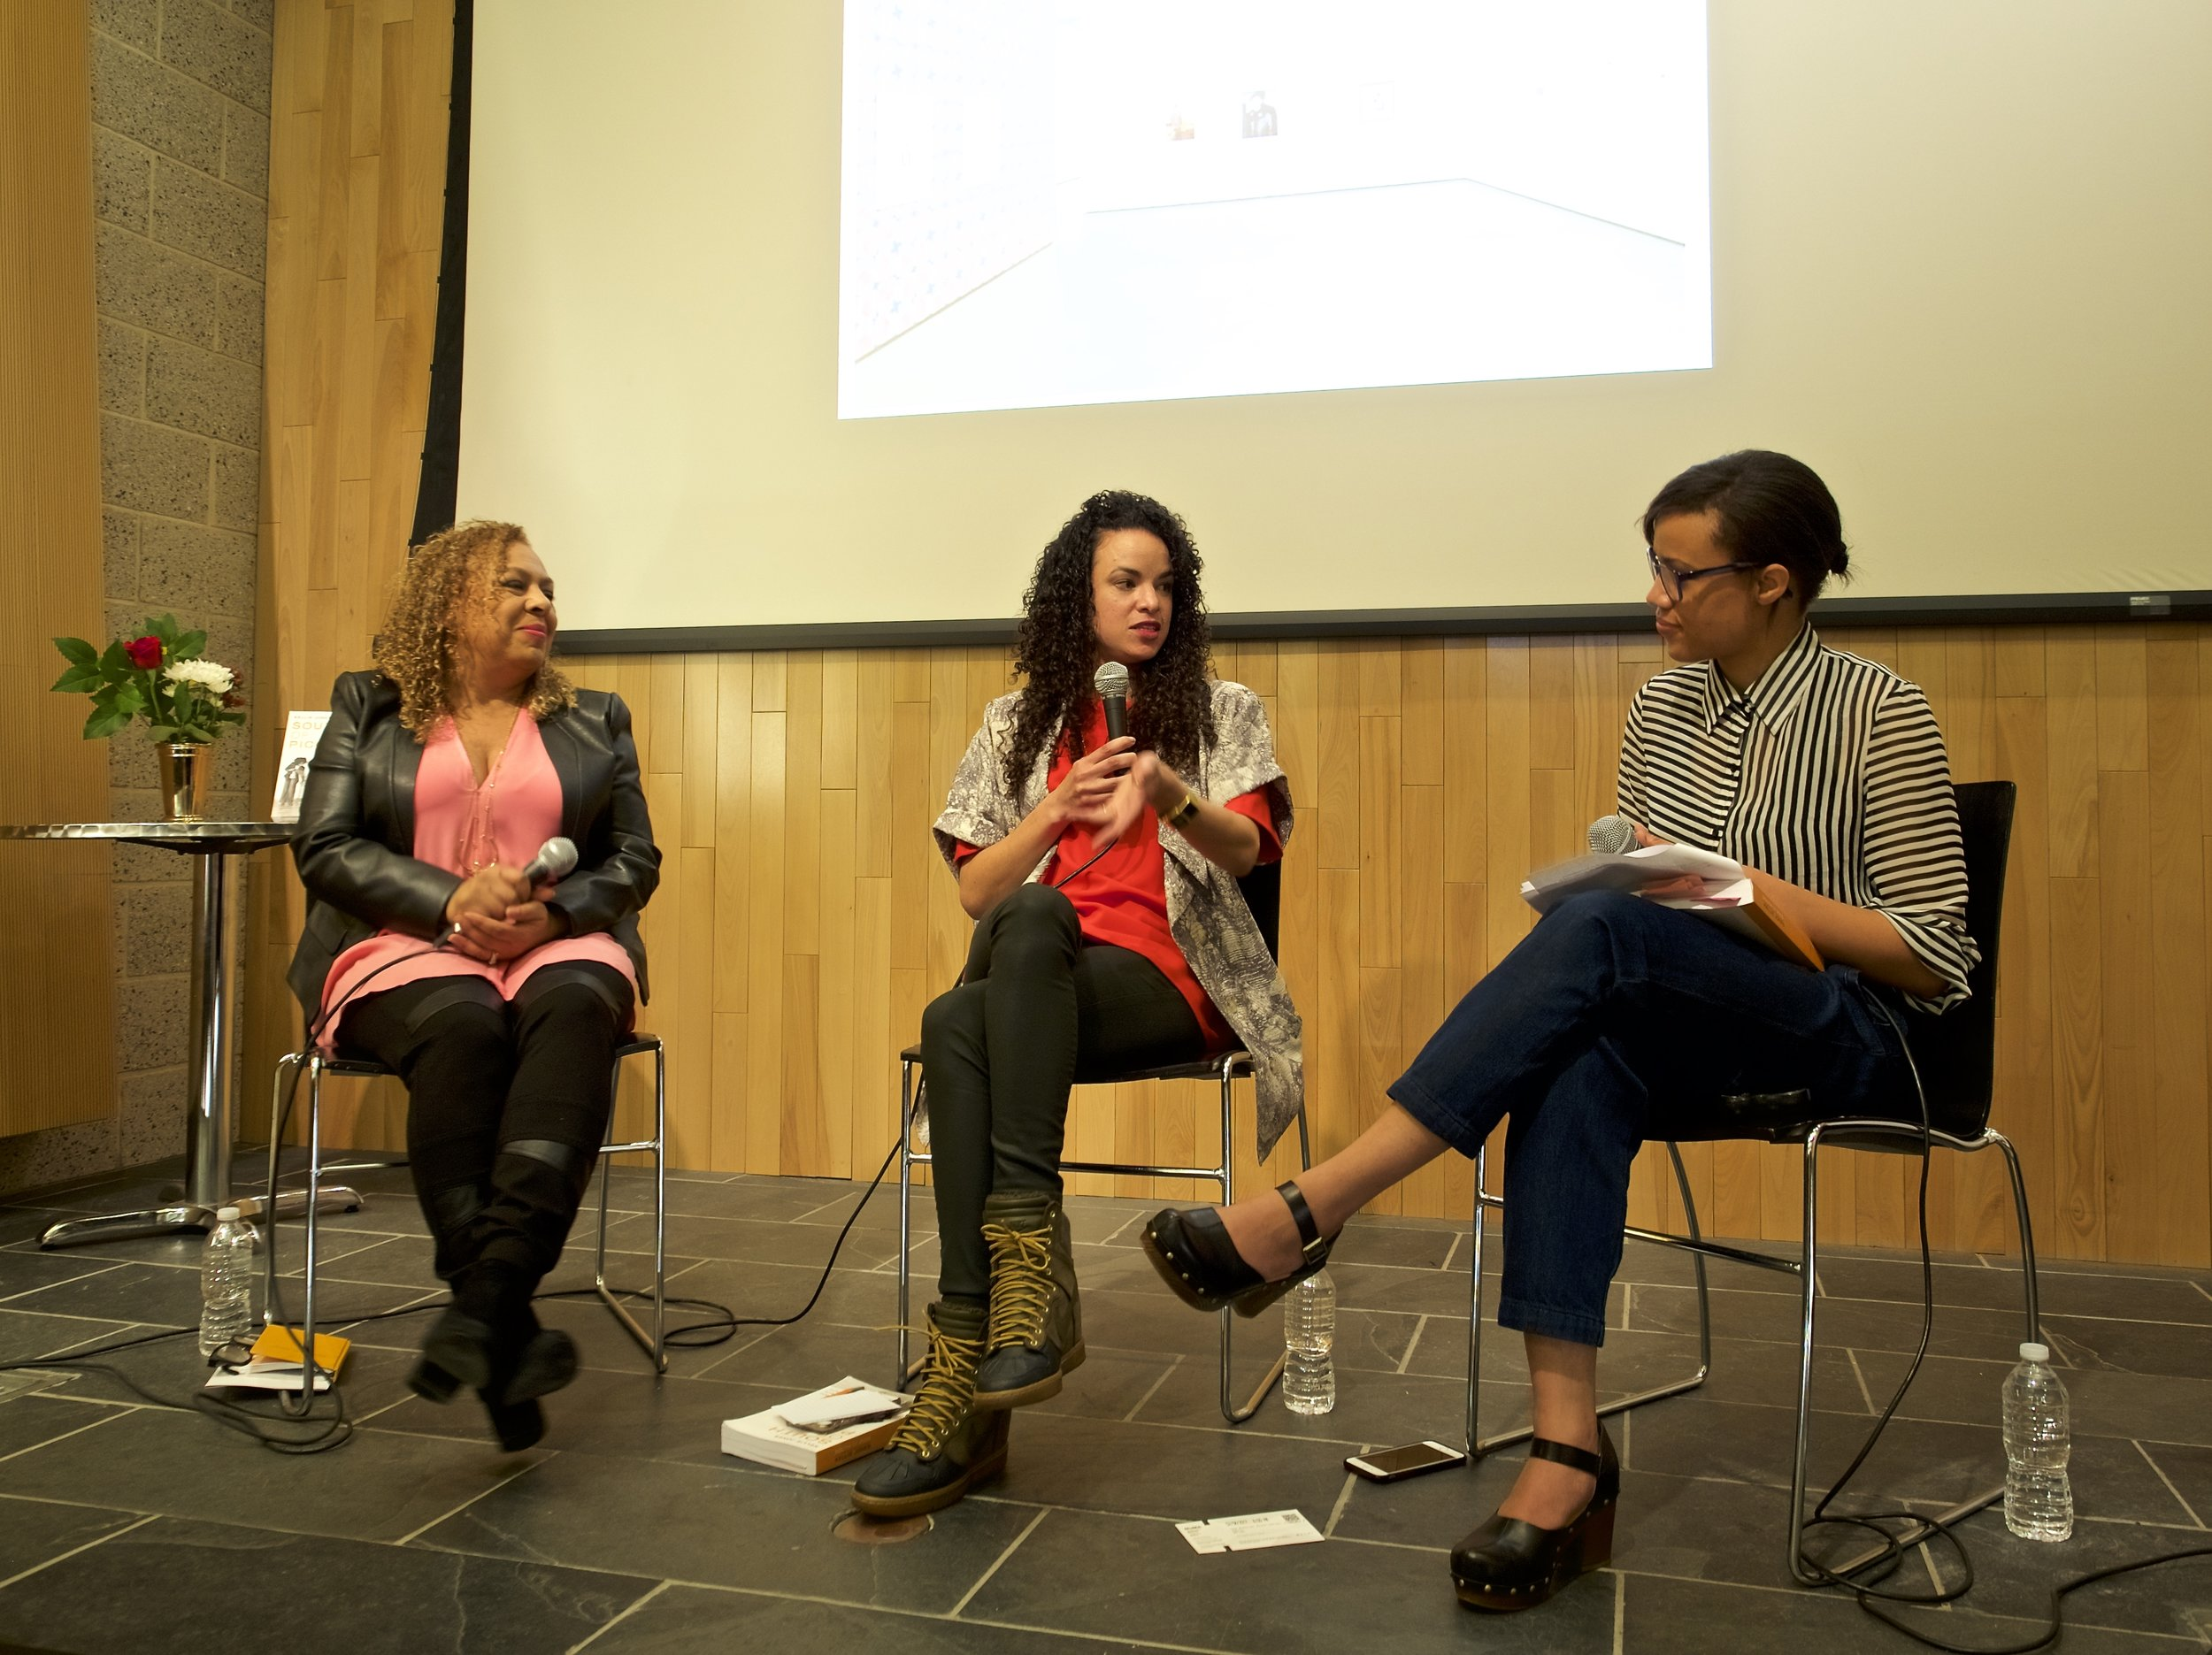 Dr. Jones and Sadie Barnette discuss art and activism in Los Angeles with Ashley James, MoMA Research Consortium Fellow in the department of Drawings and Prints.